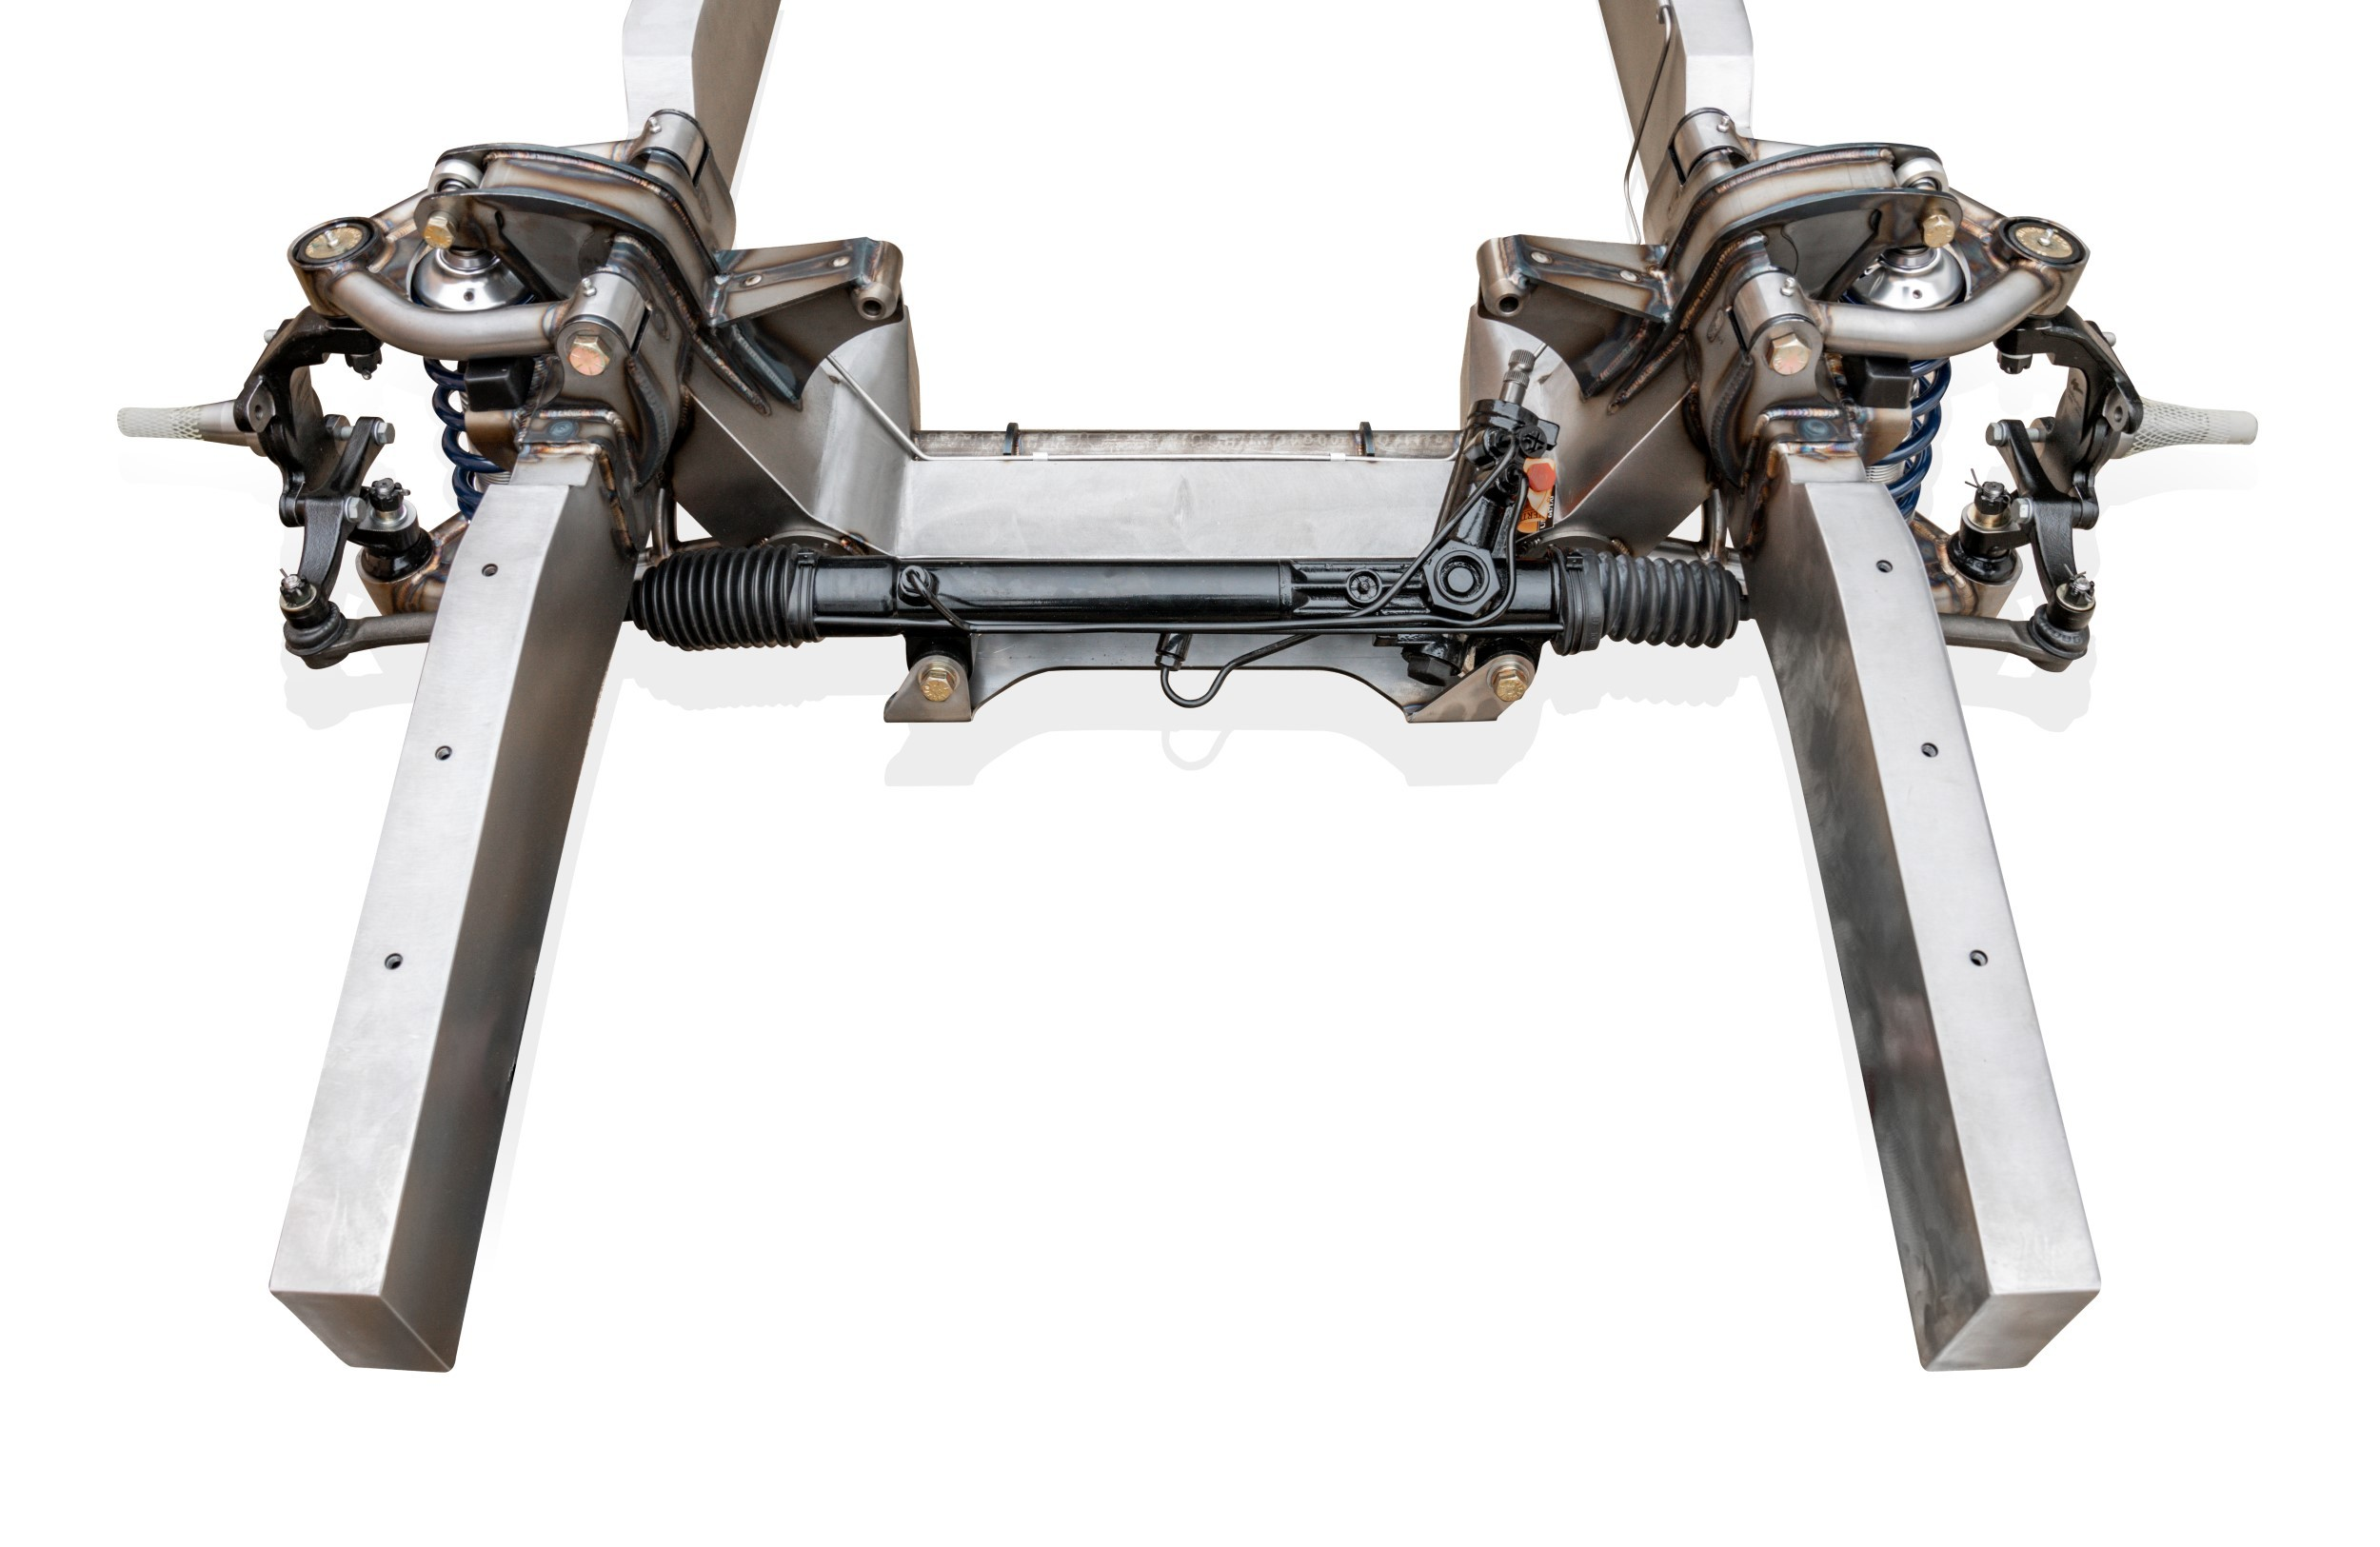 Chevy Truck Front Suspension Diagram 1955 59 Chevy Truck Chassis Roadster Shop Roadster Shop Of Chevy Truck Front Suspension Diagram